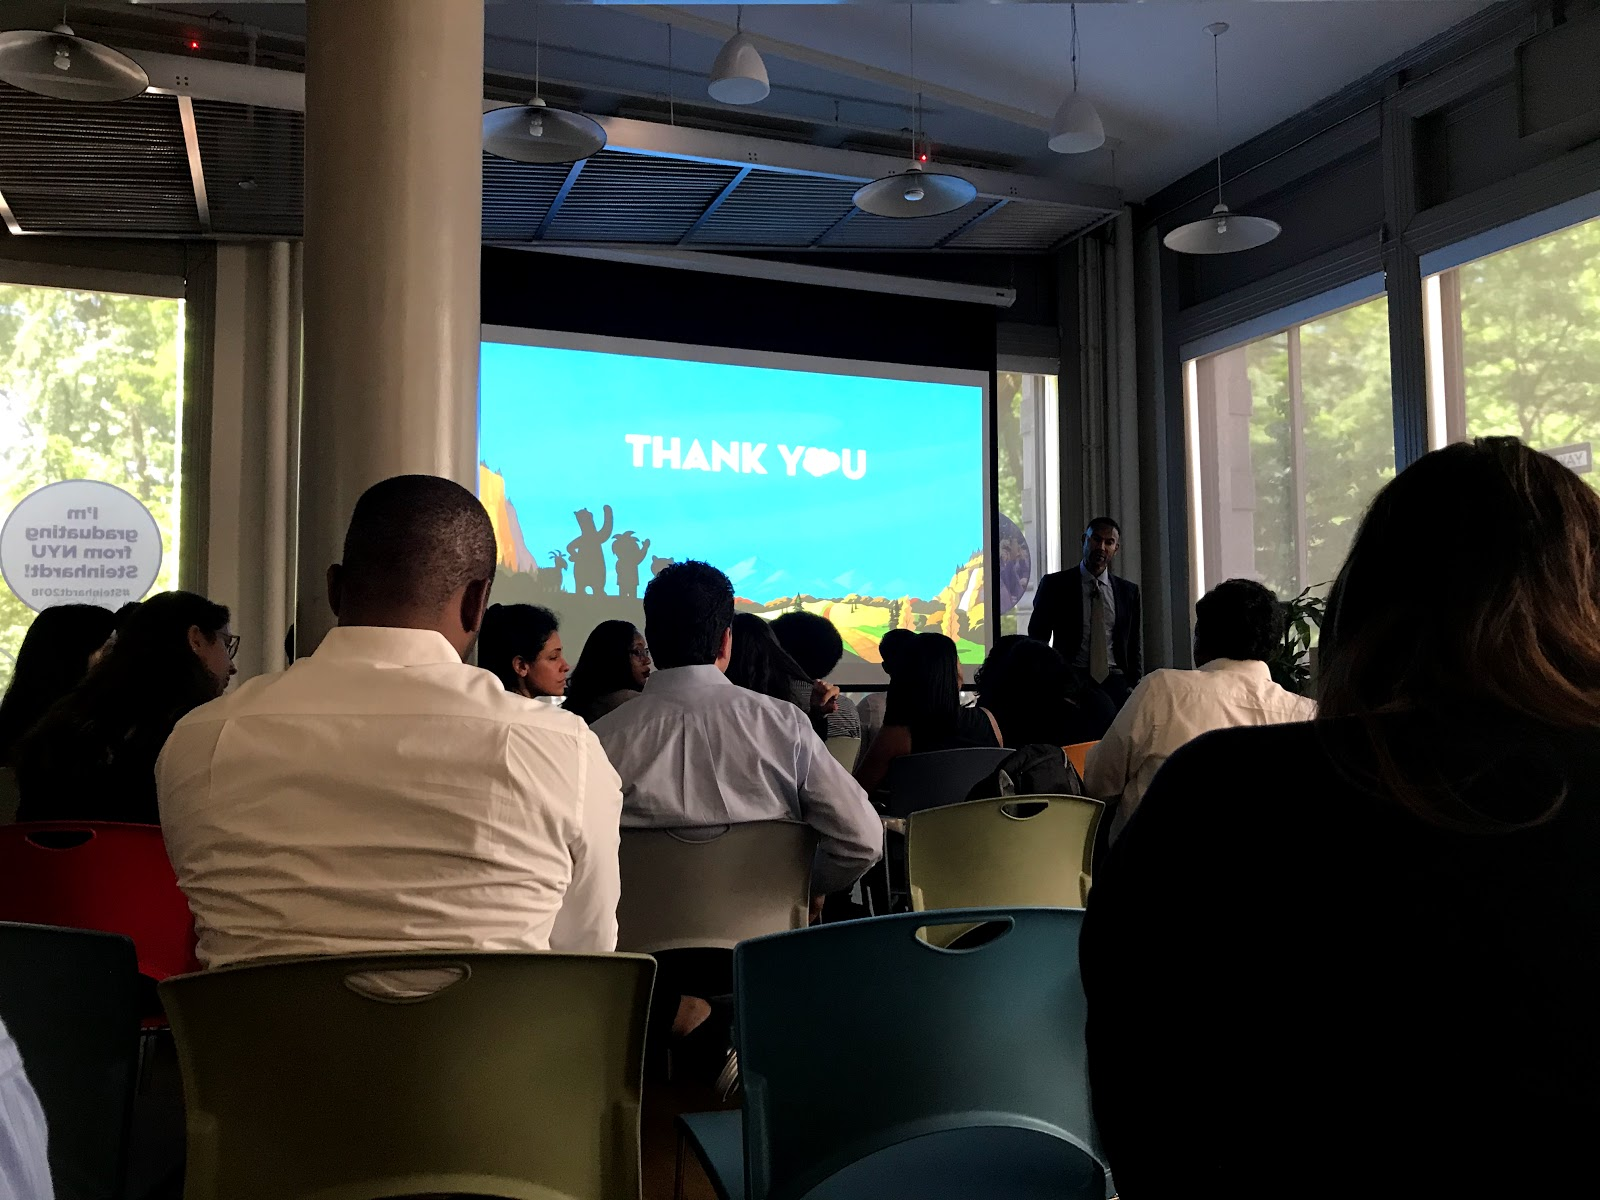 Tigh Loughhead meets Salesforce's Chief Equality Officer Tony Prophet at NYC Equality Workshop